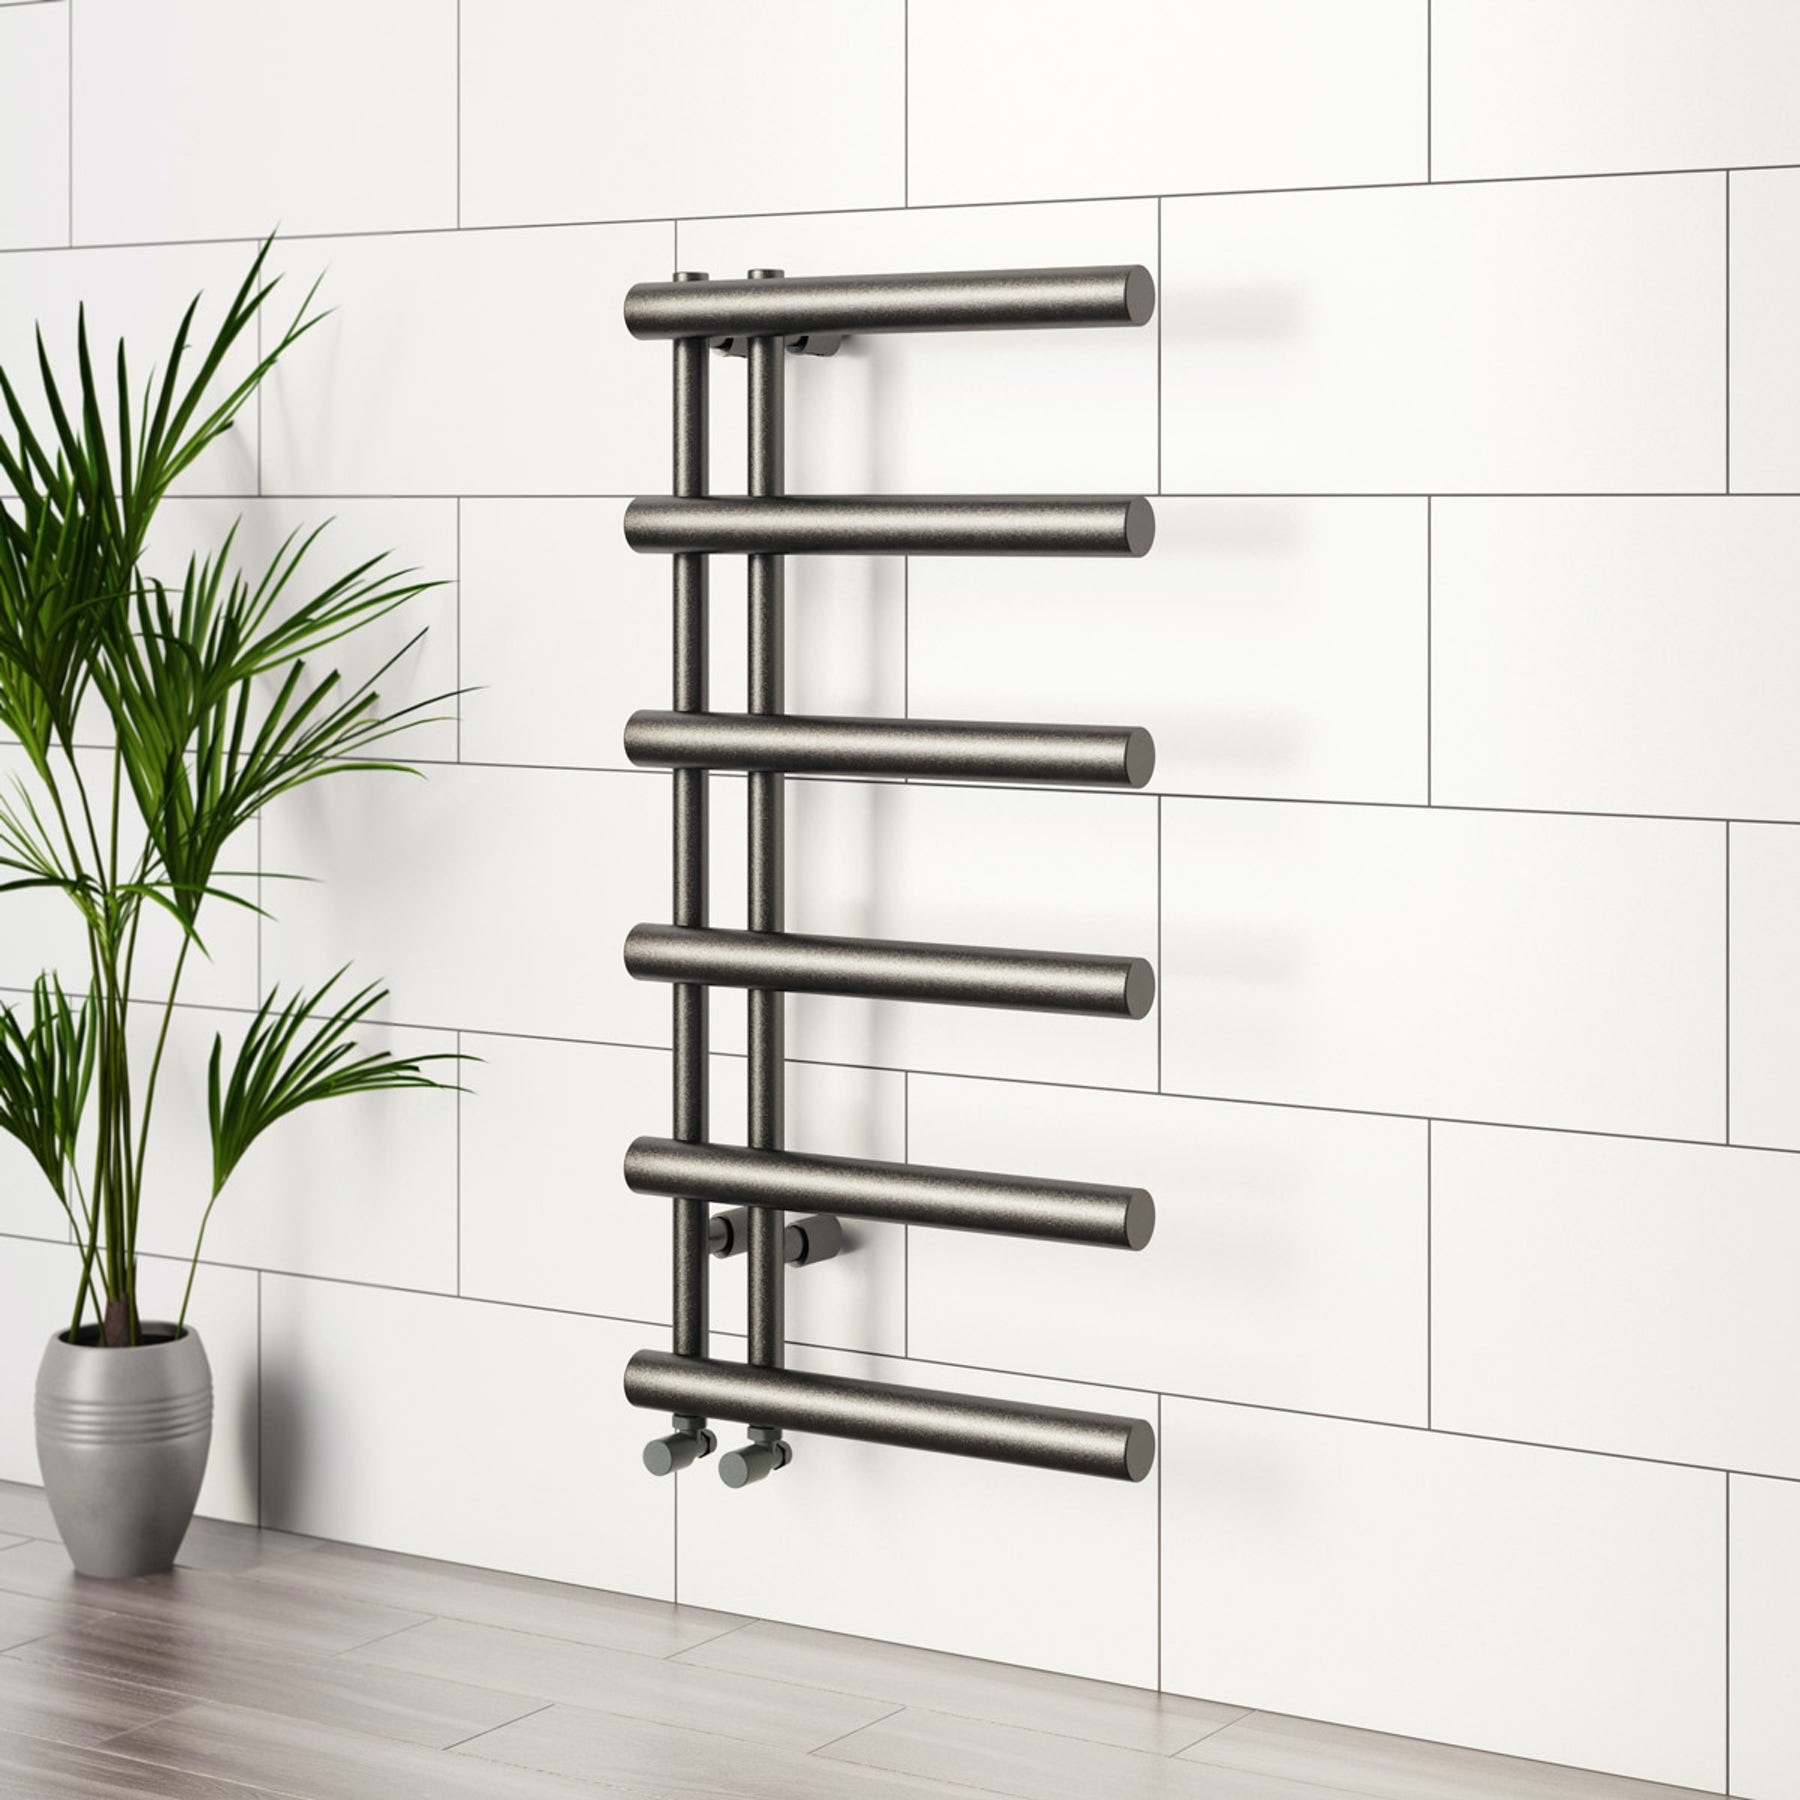 Designer heated towel rails from Victoria Plum